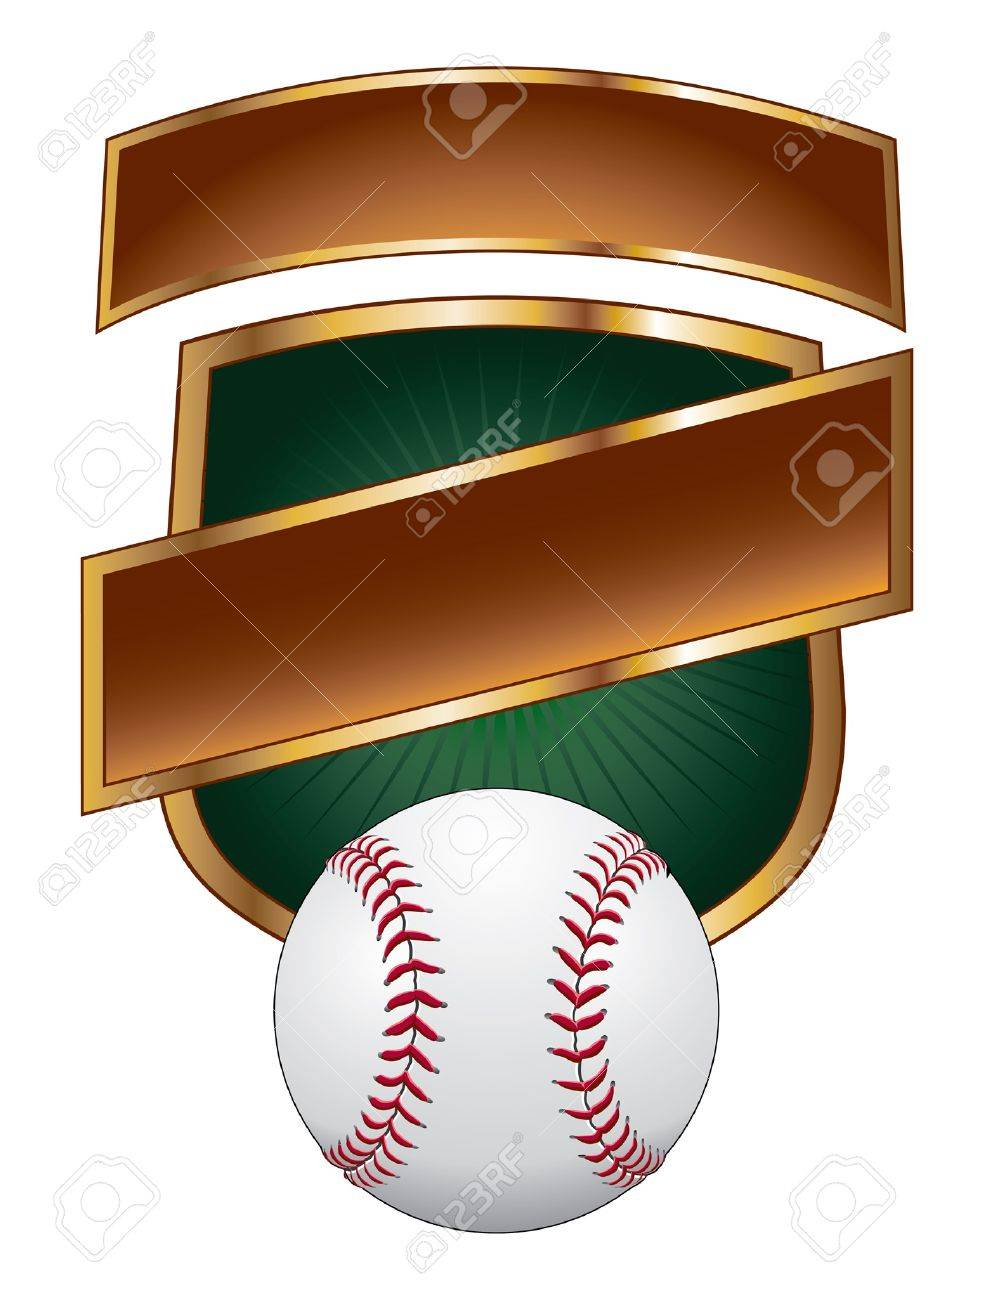 Baseball Design Templates Is An Illustration Of A Baseball Design ...